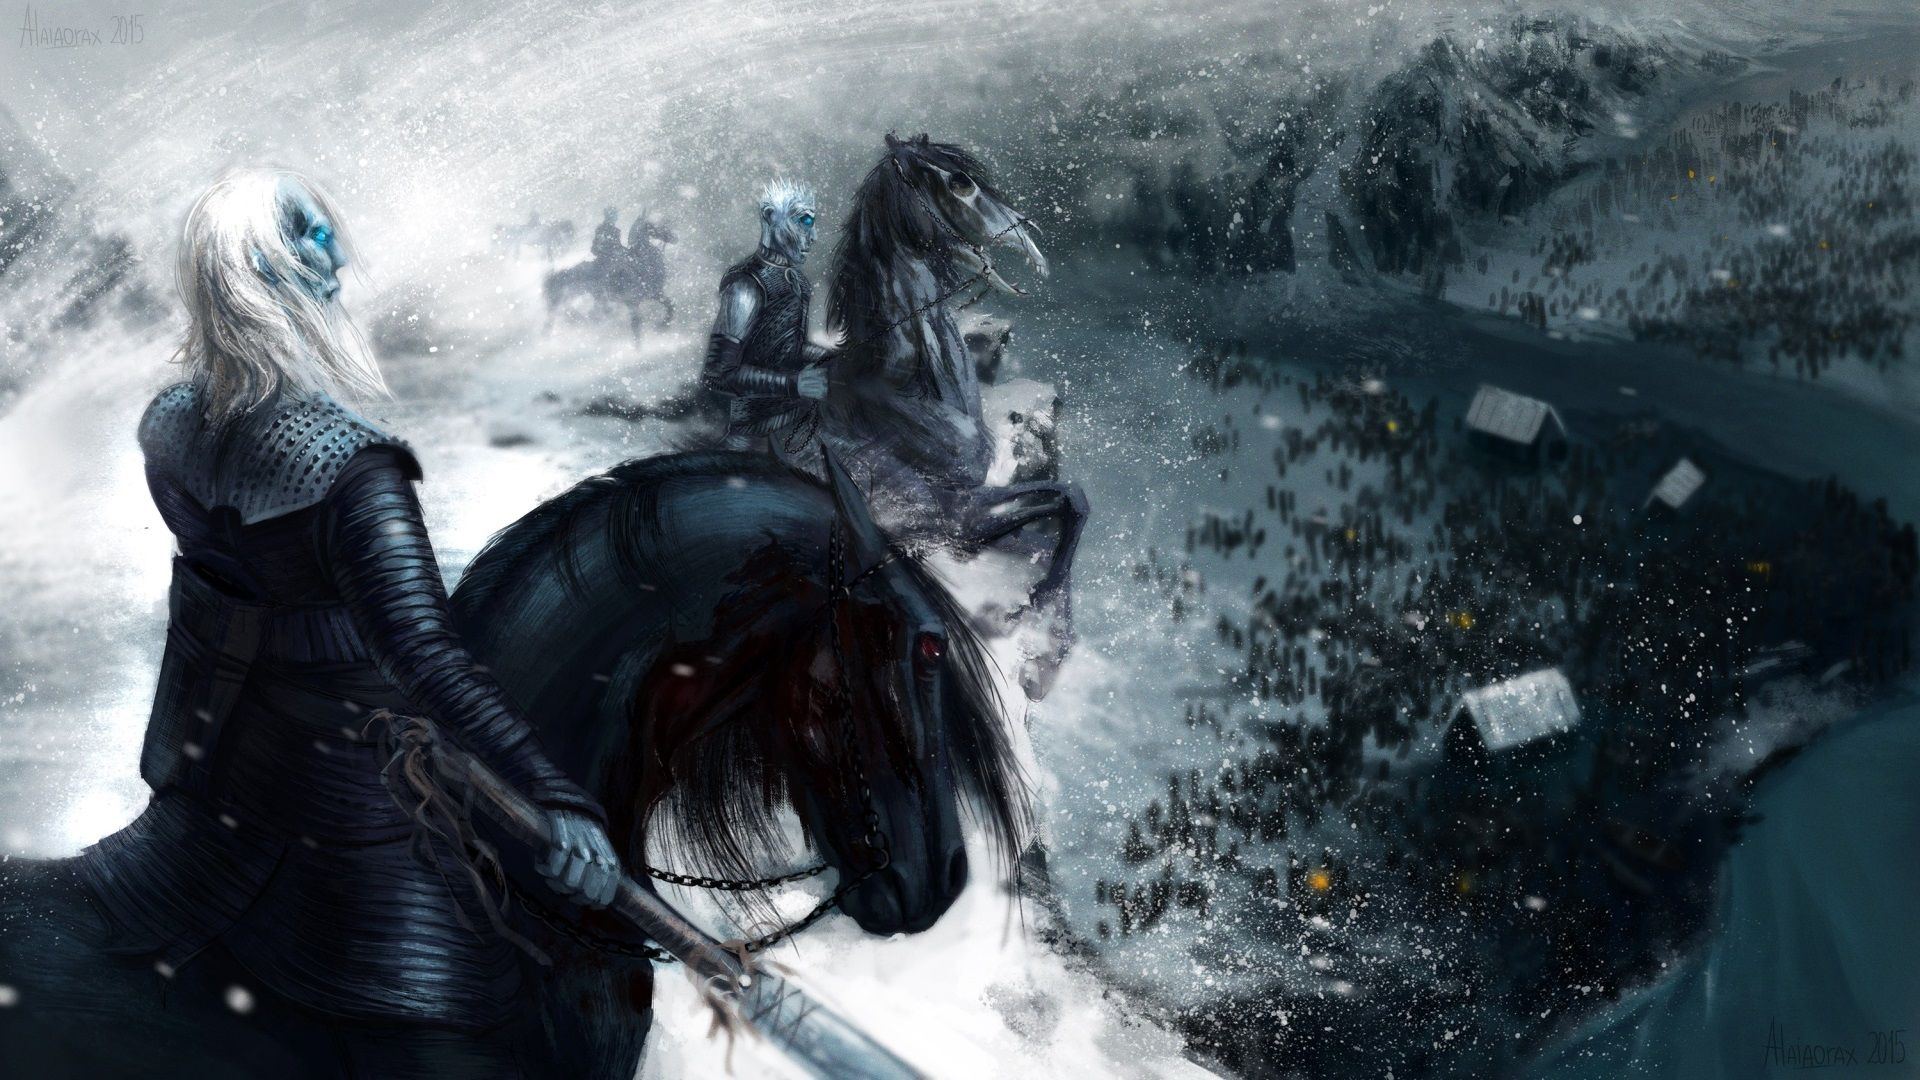 1920x1080 Game Of Thrones Wallpaper Photo Download Free Game Of Thrones Artwork Hardhome Game Of Thrones Game Of Thrones